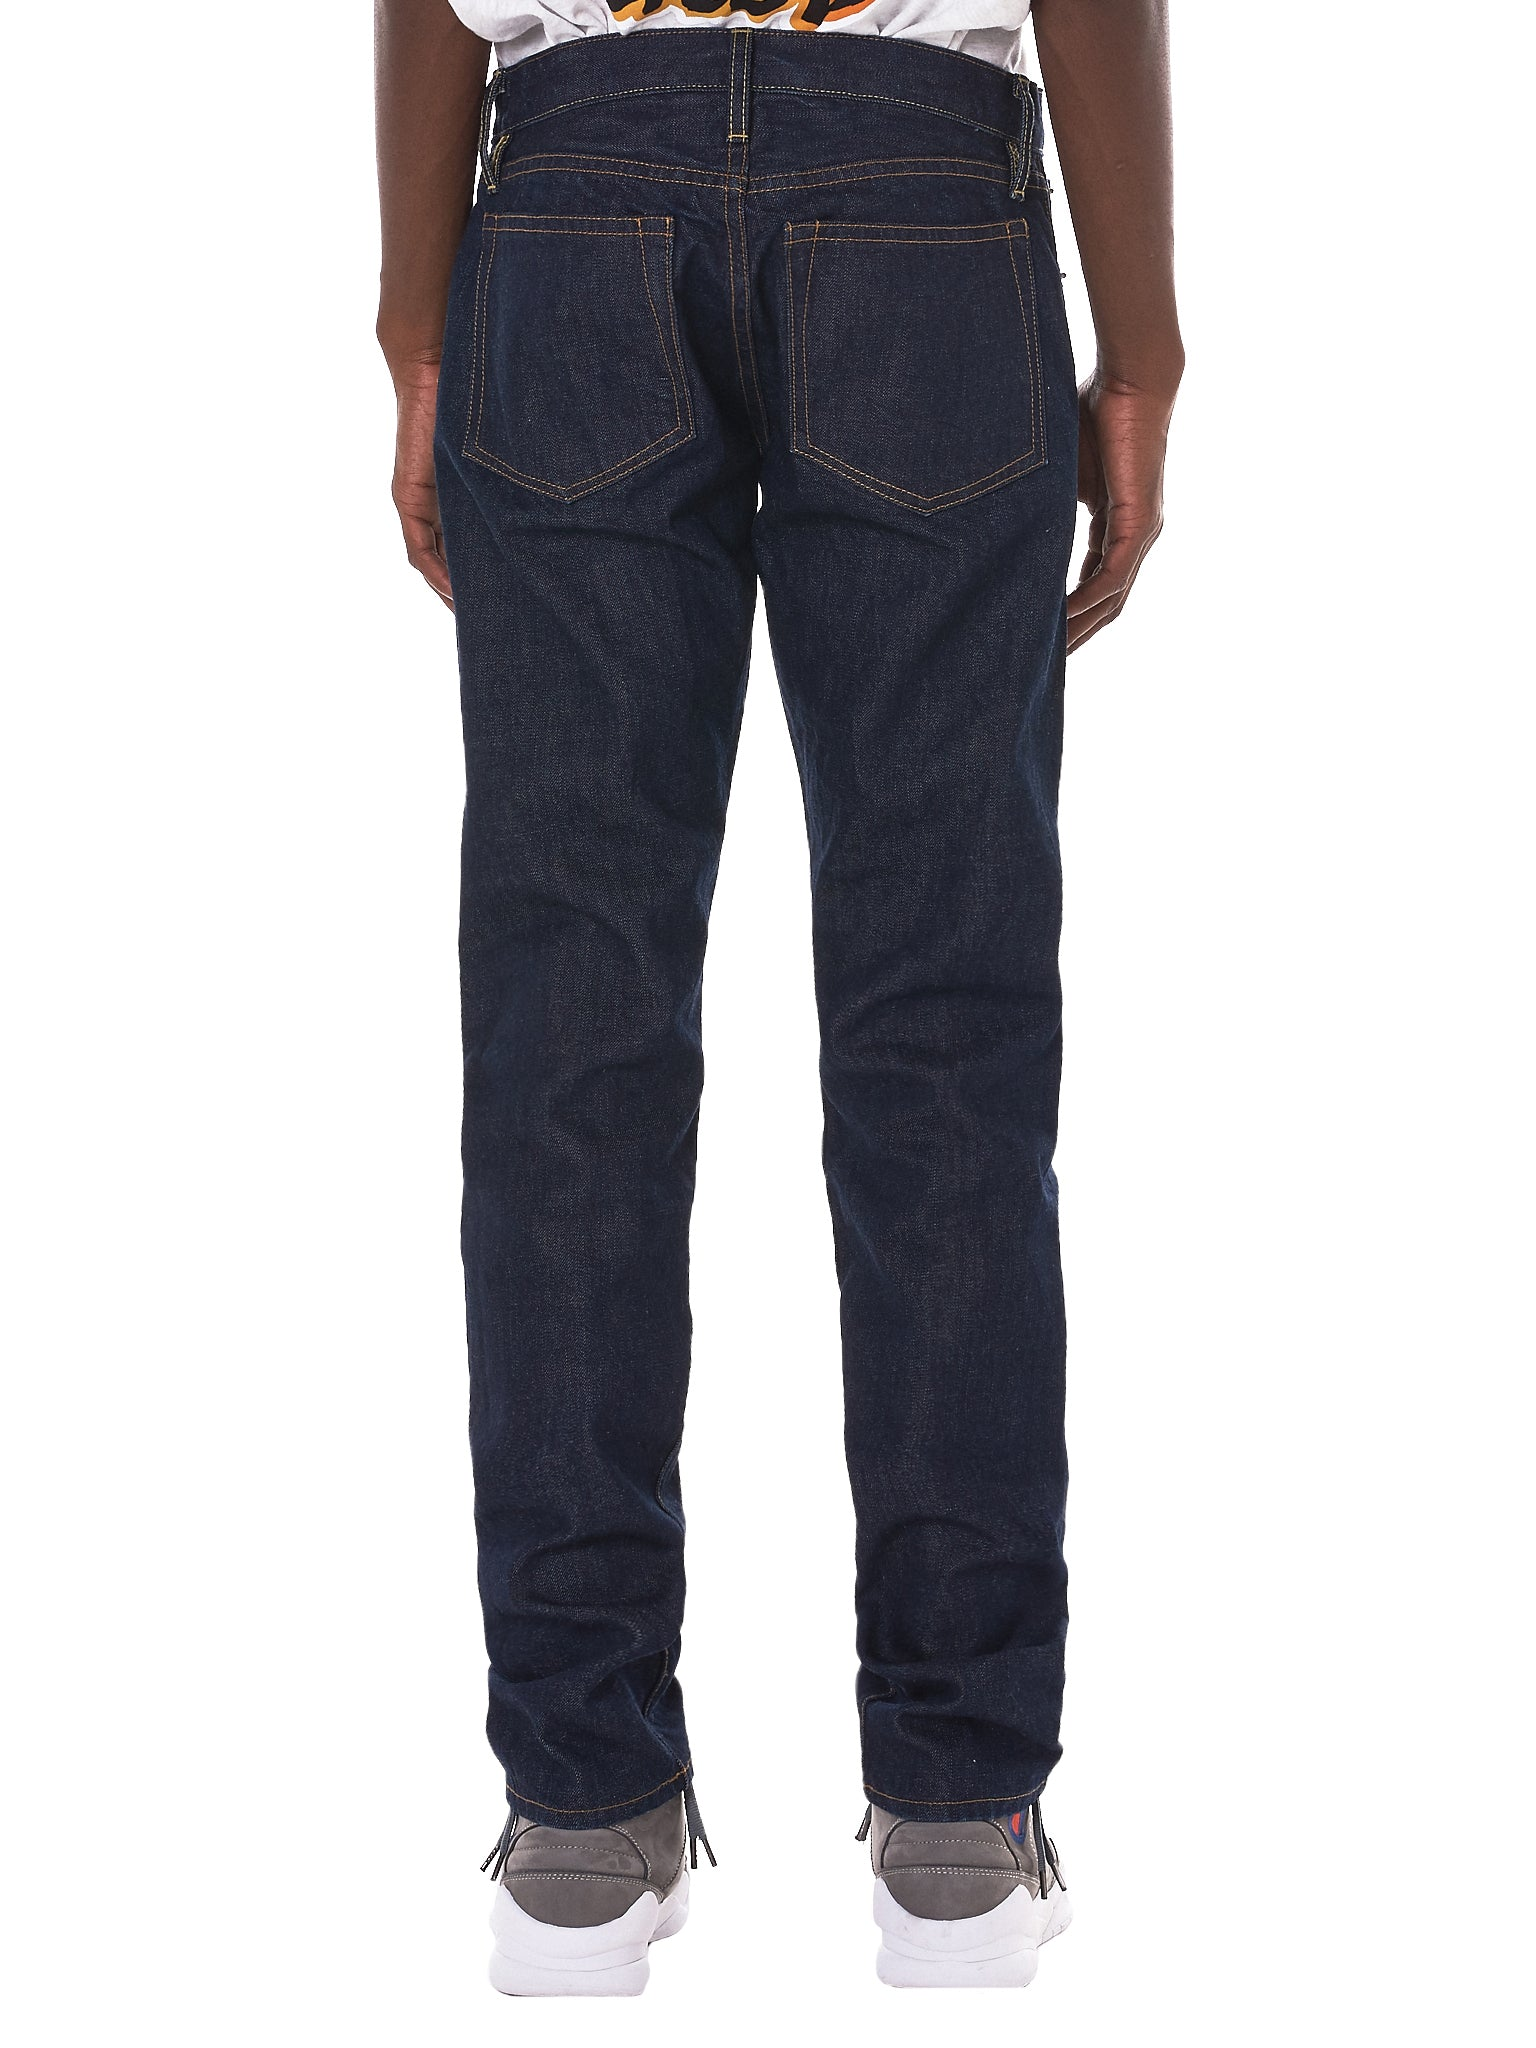 'VOE Enterprise' Raw Jeans (VOE52-RAW-DENIM)